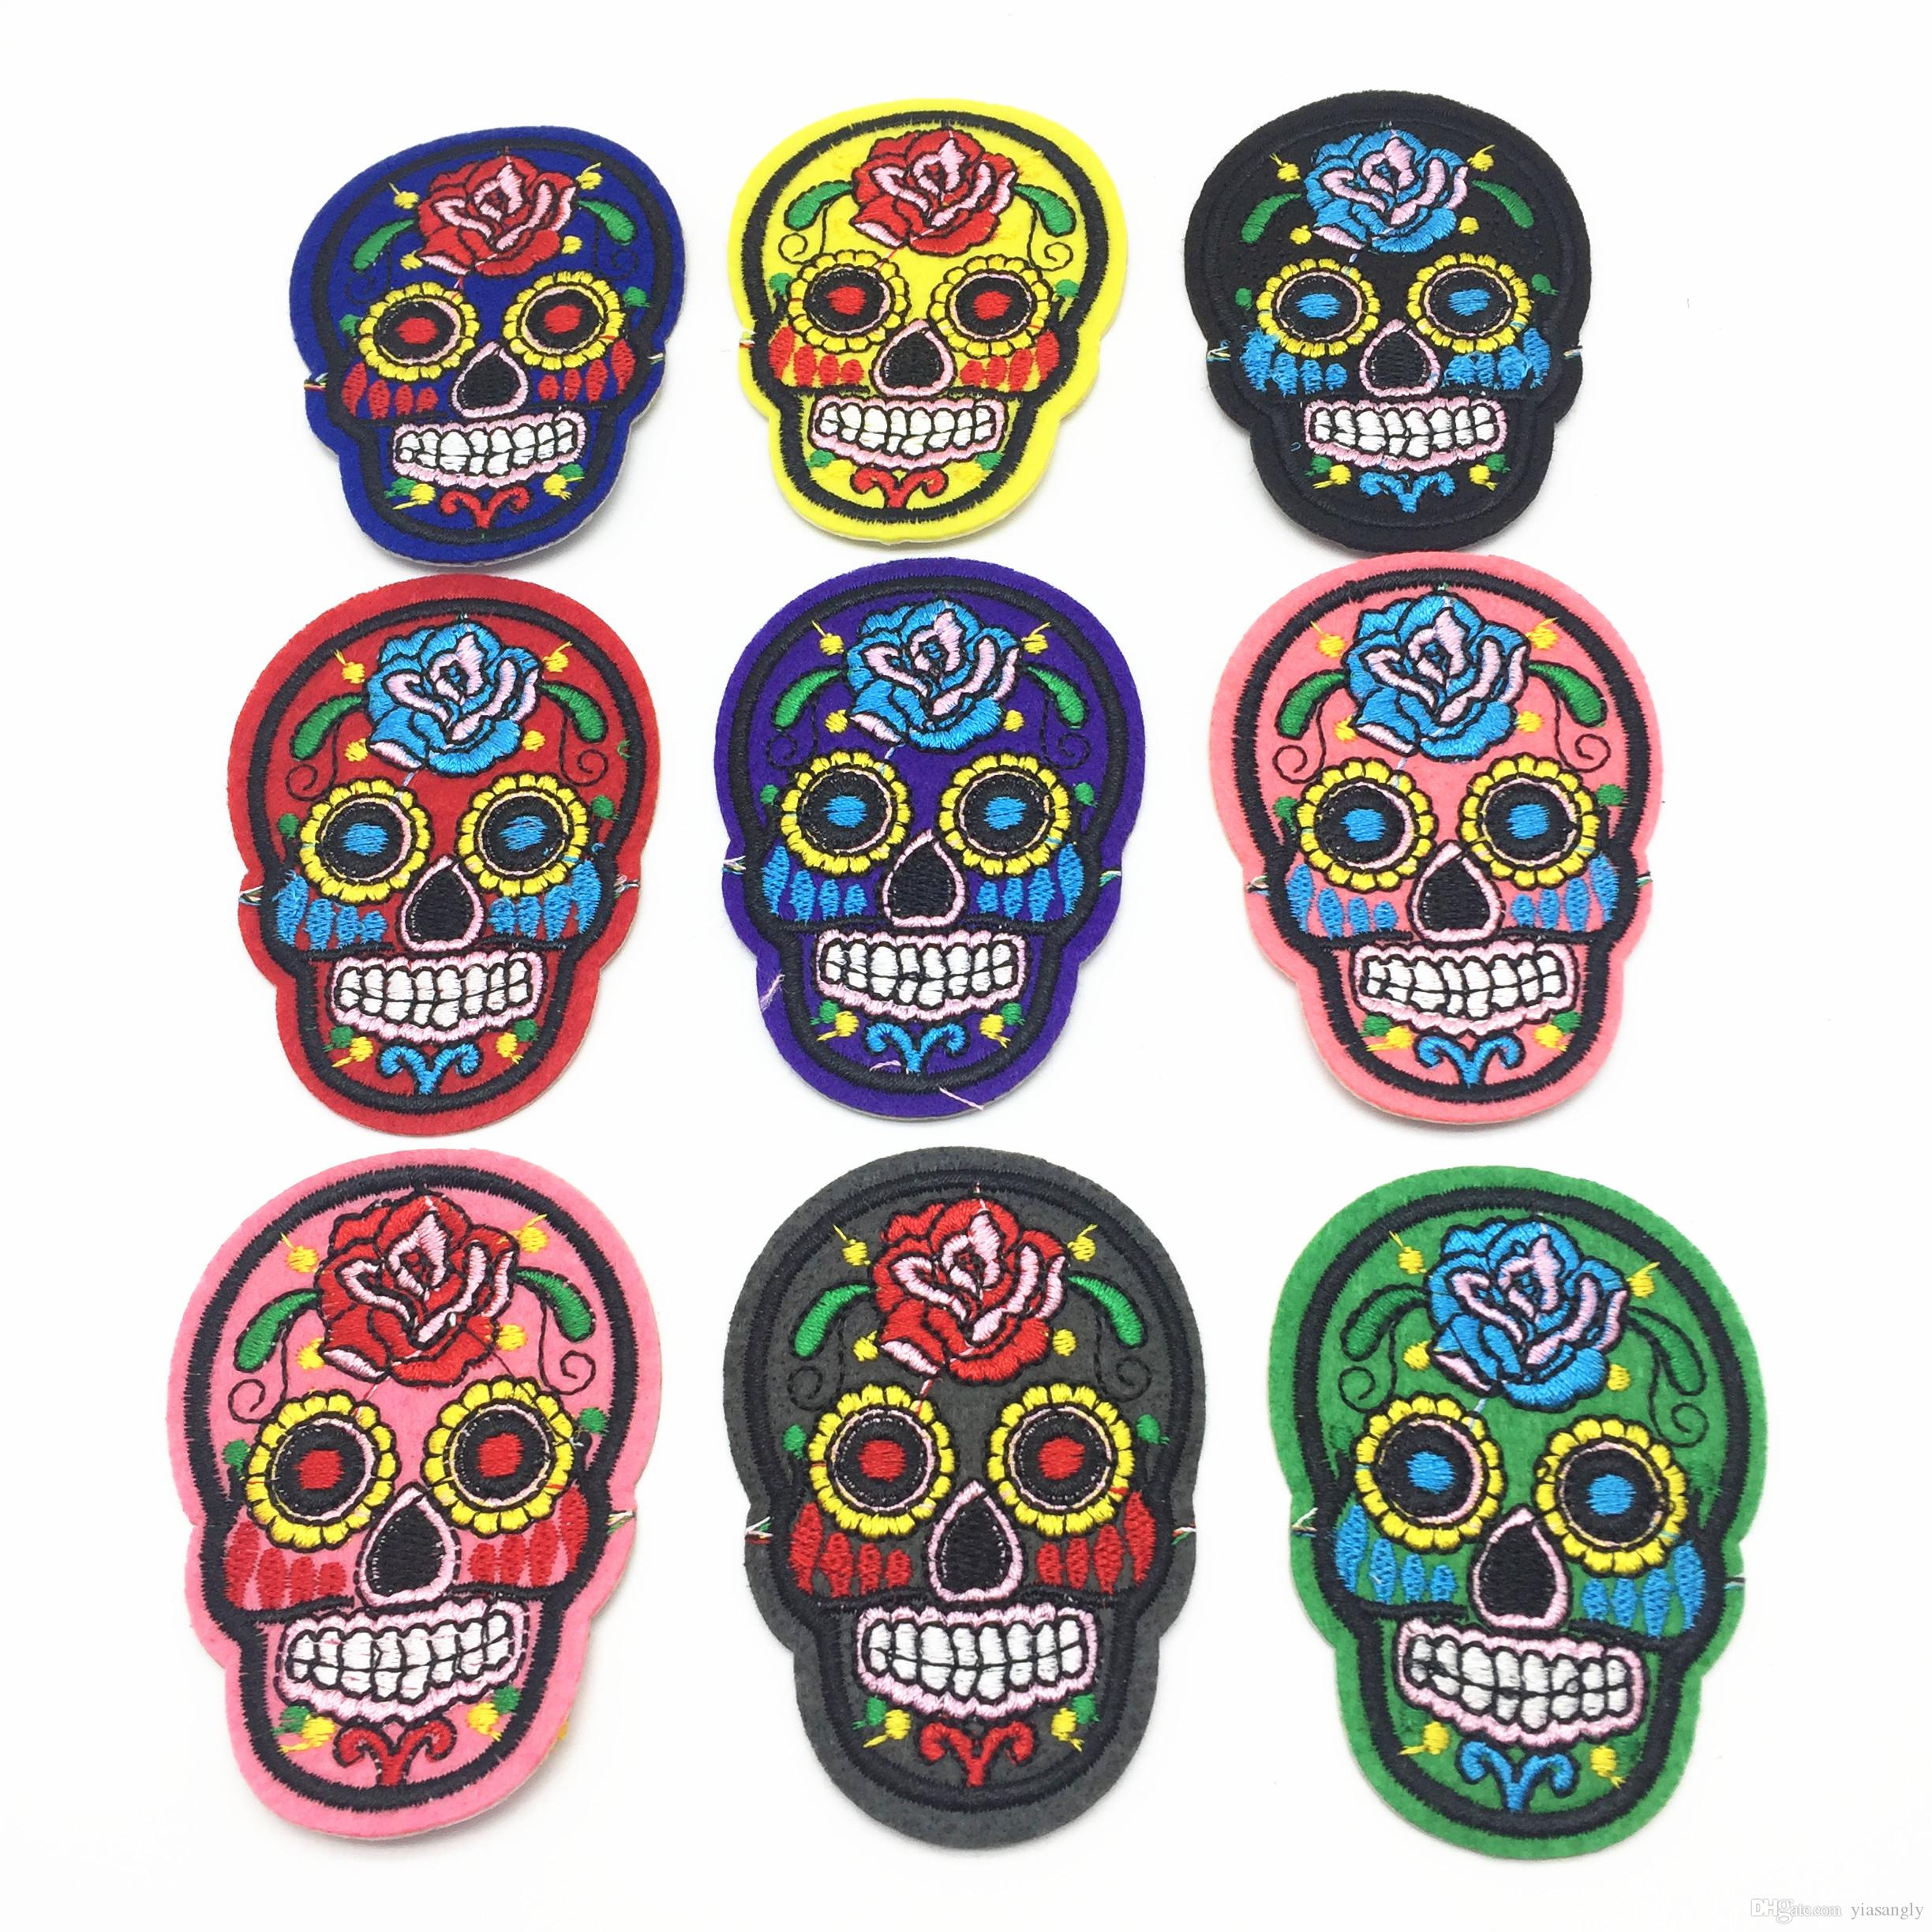 Mixed Skull Clothes Patch DIY Skeleton Embroidered Patches Iron On Fabric Badges Sew On Cloth Stickers